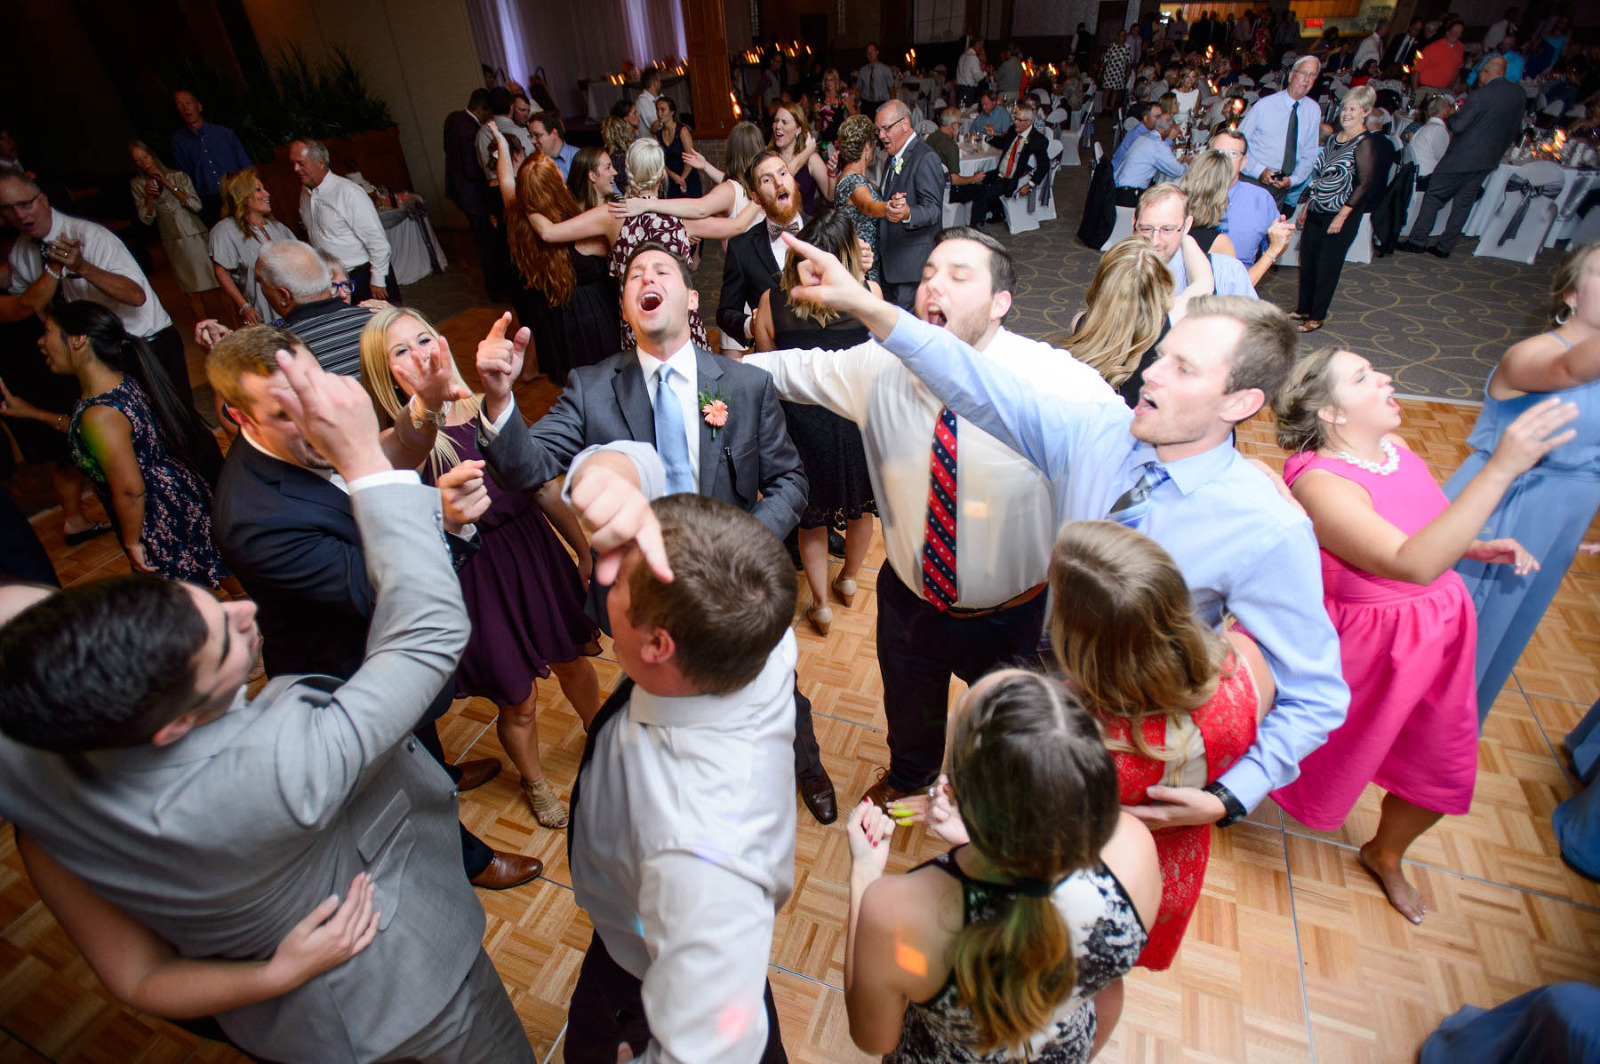 Wedding guests on the dance floor at the Horizons Conference Center